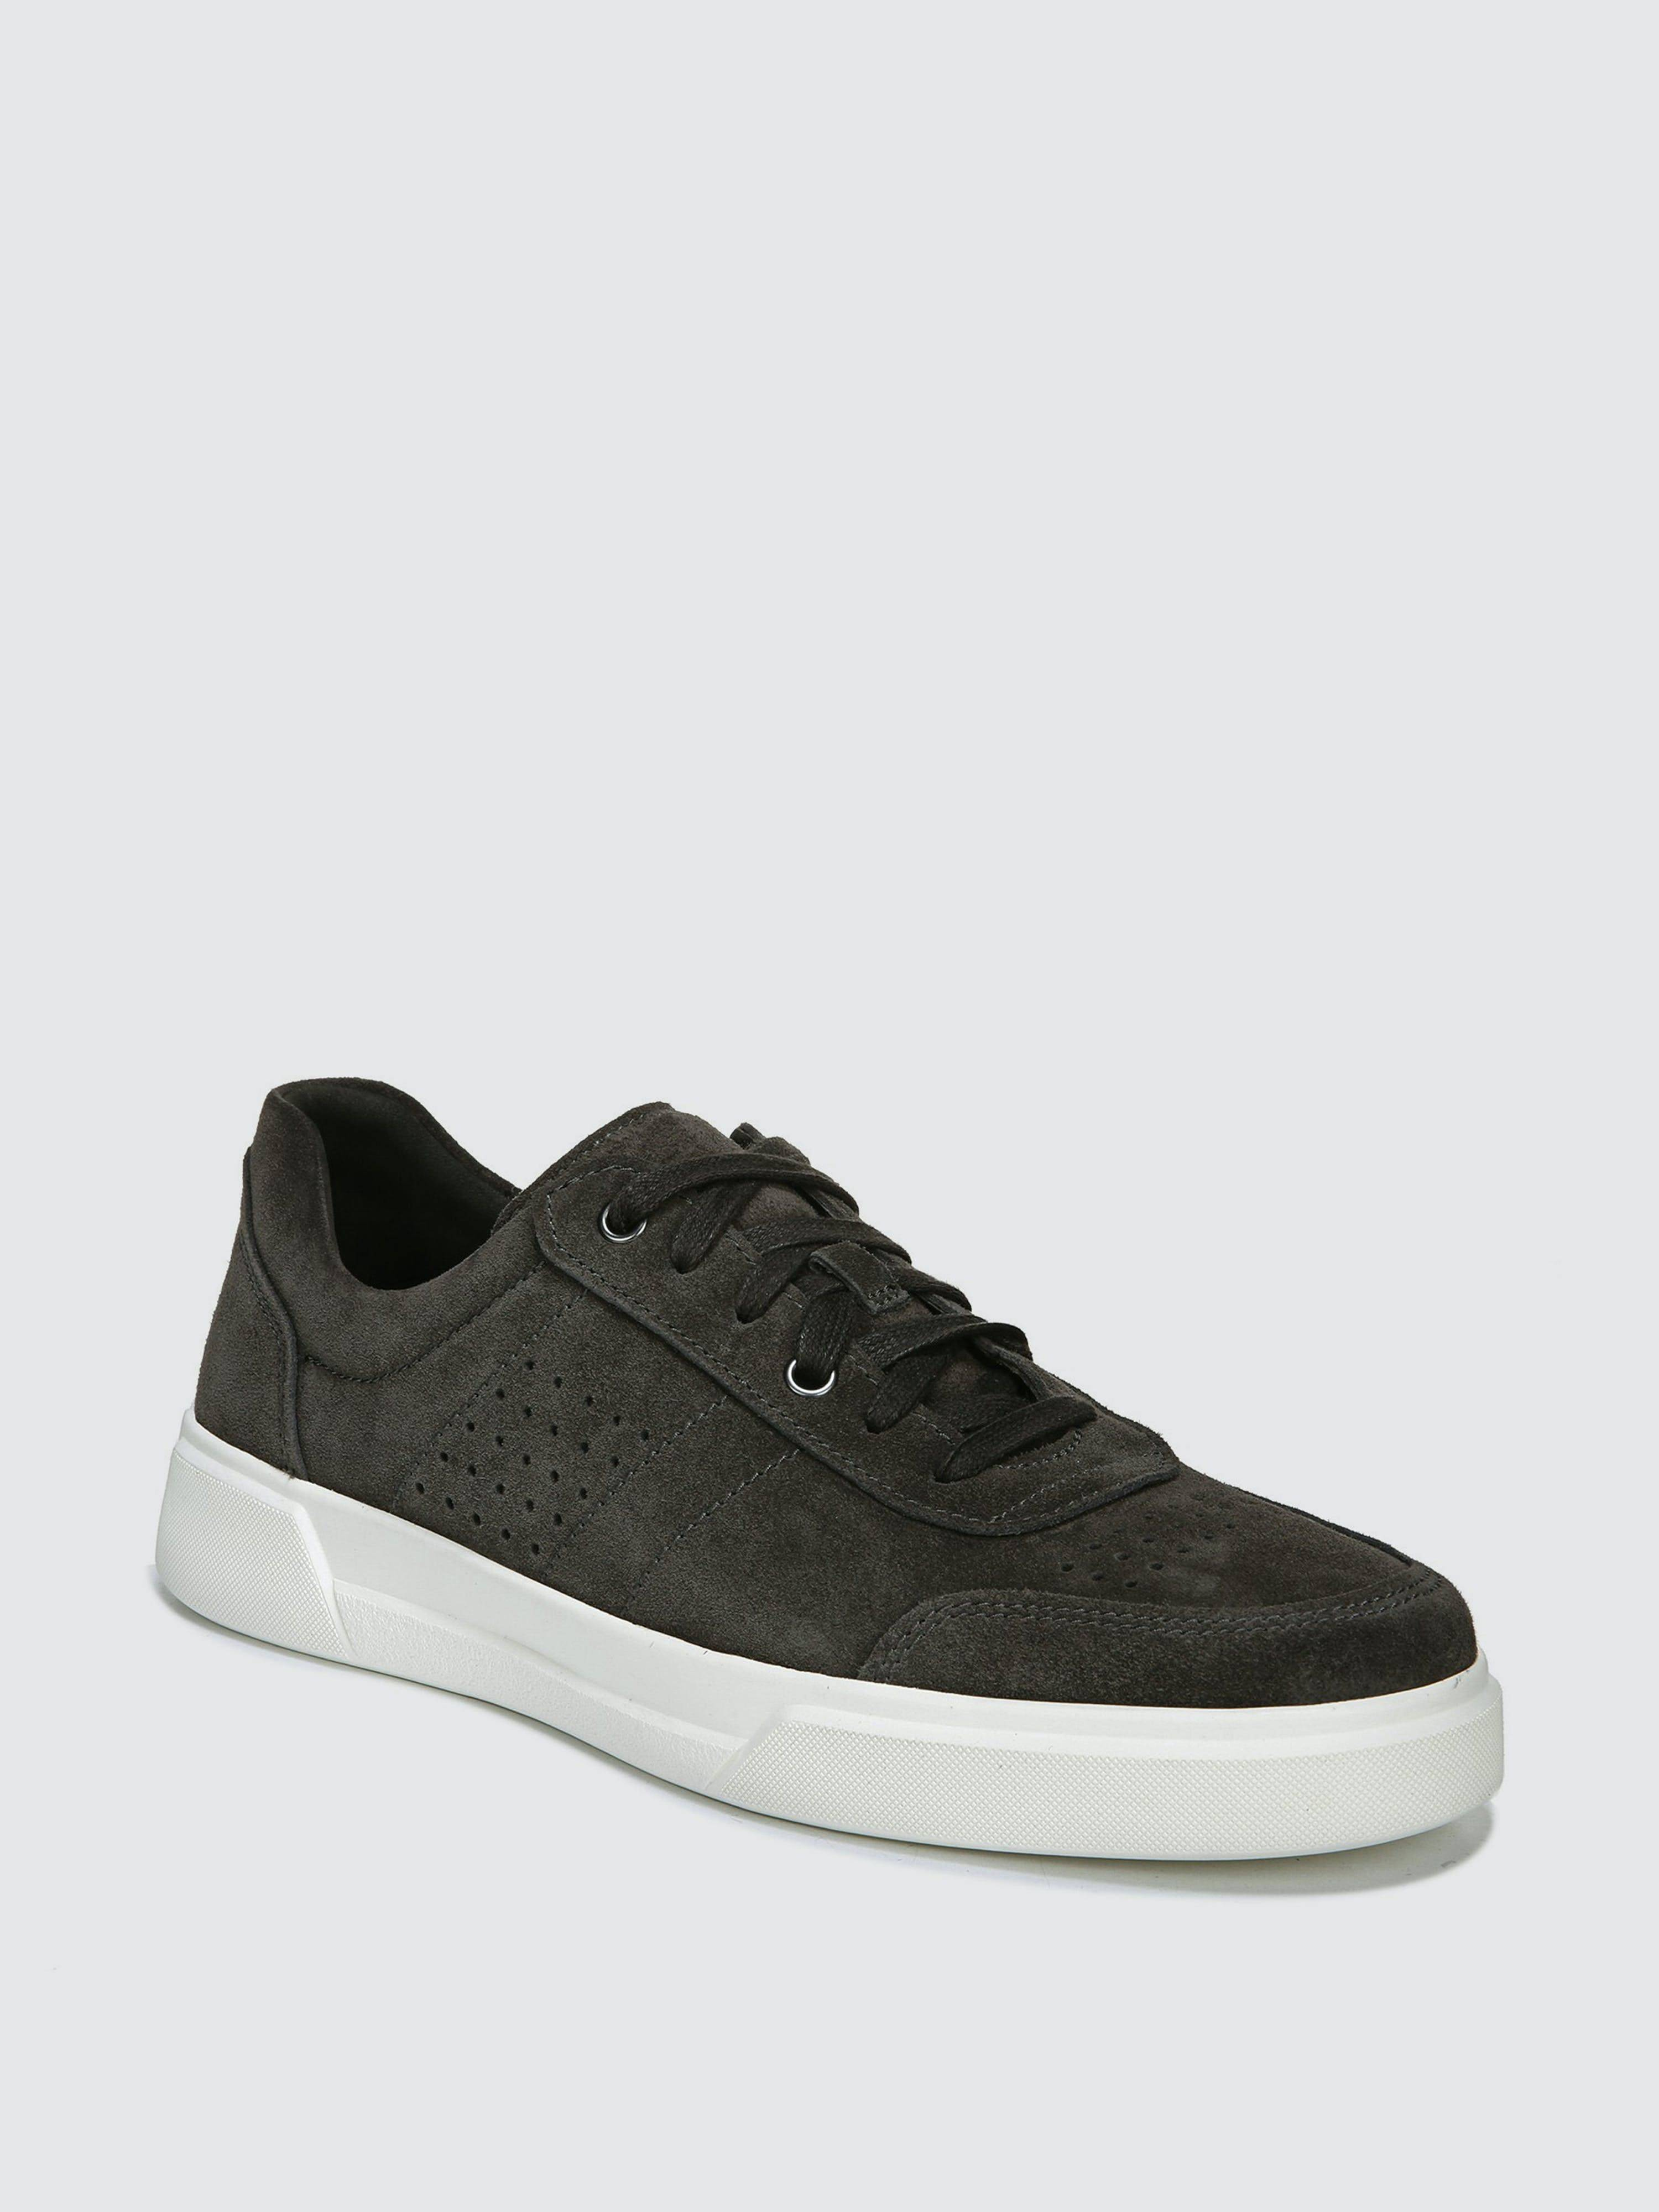 Vince Shoes - Verified Partner Barnett Sport Suede Leather Low Top Sneaker - 10/5 - Also in: 9, 8/5, 10, 7, 12, 11, 9/5, 8  - Grey